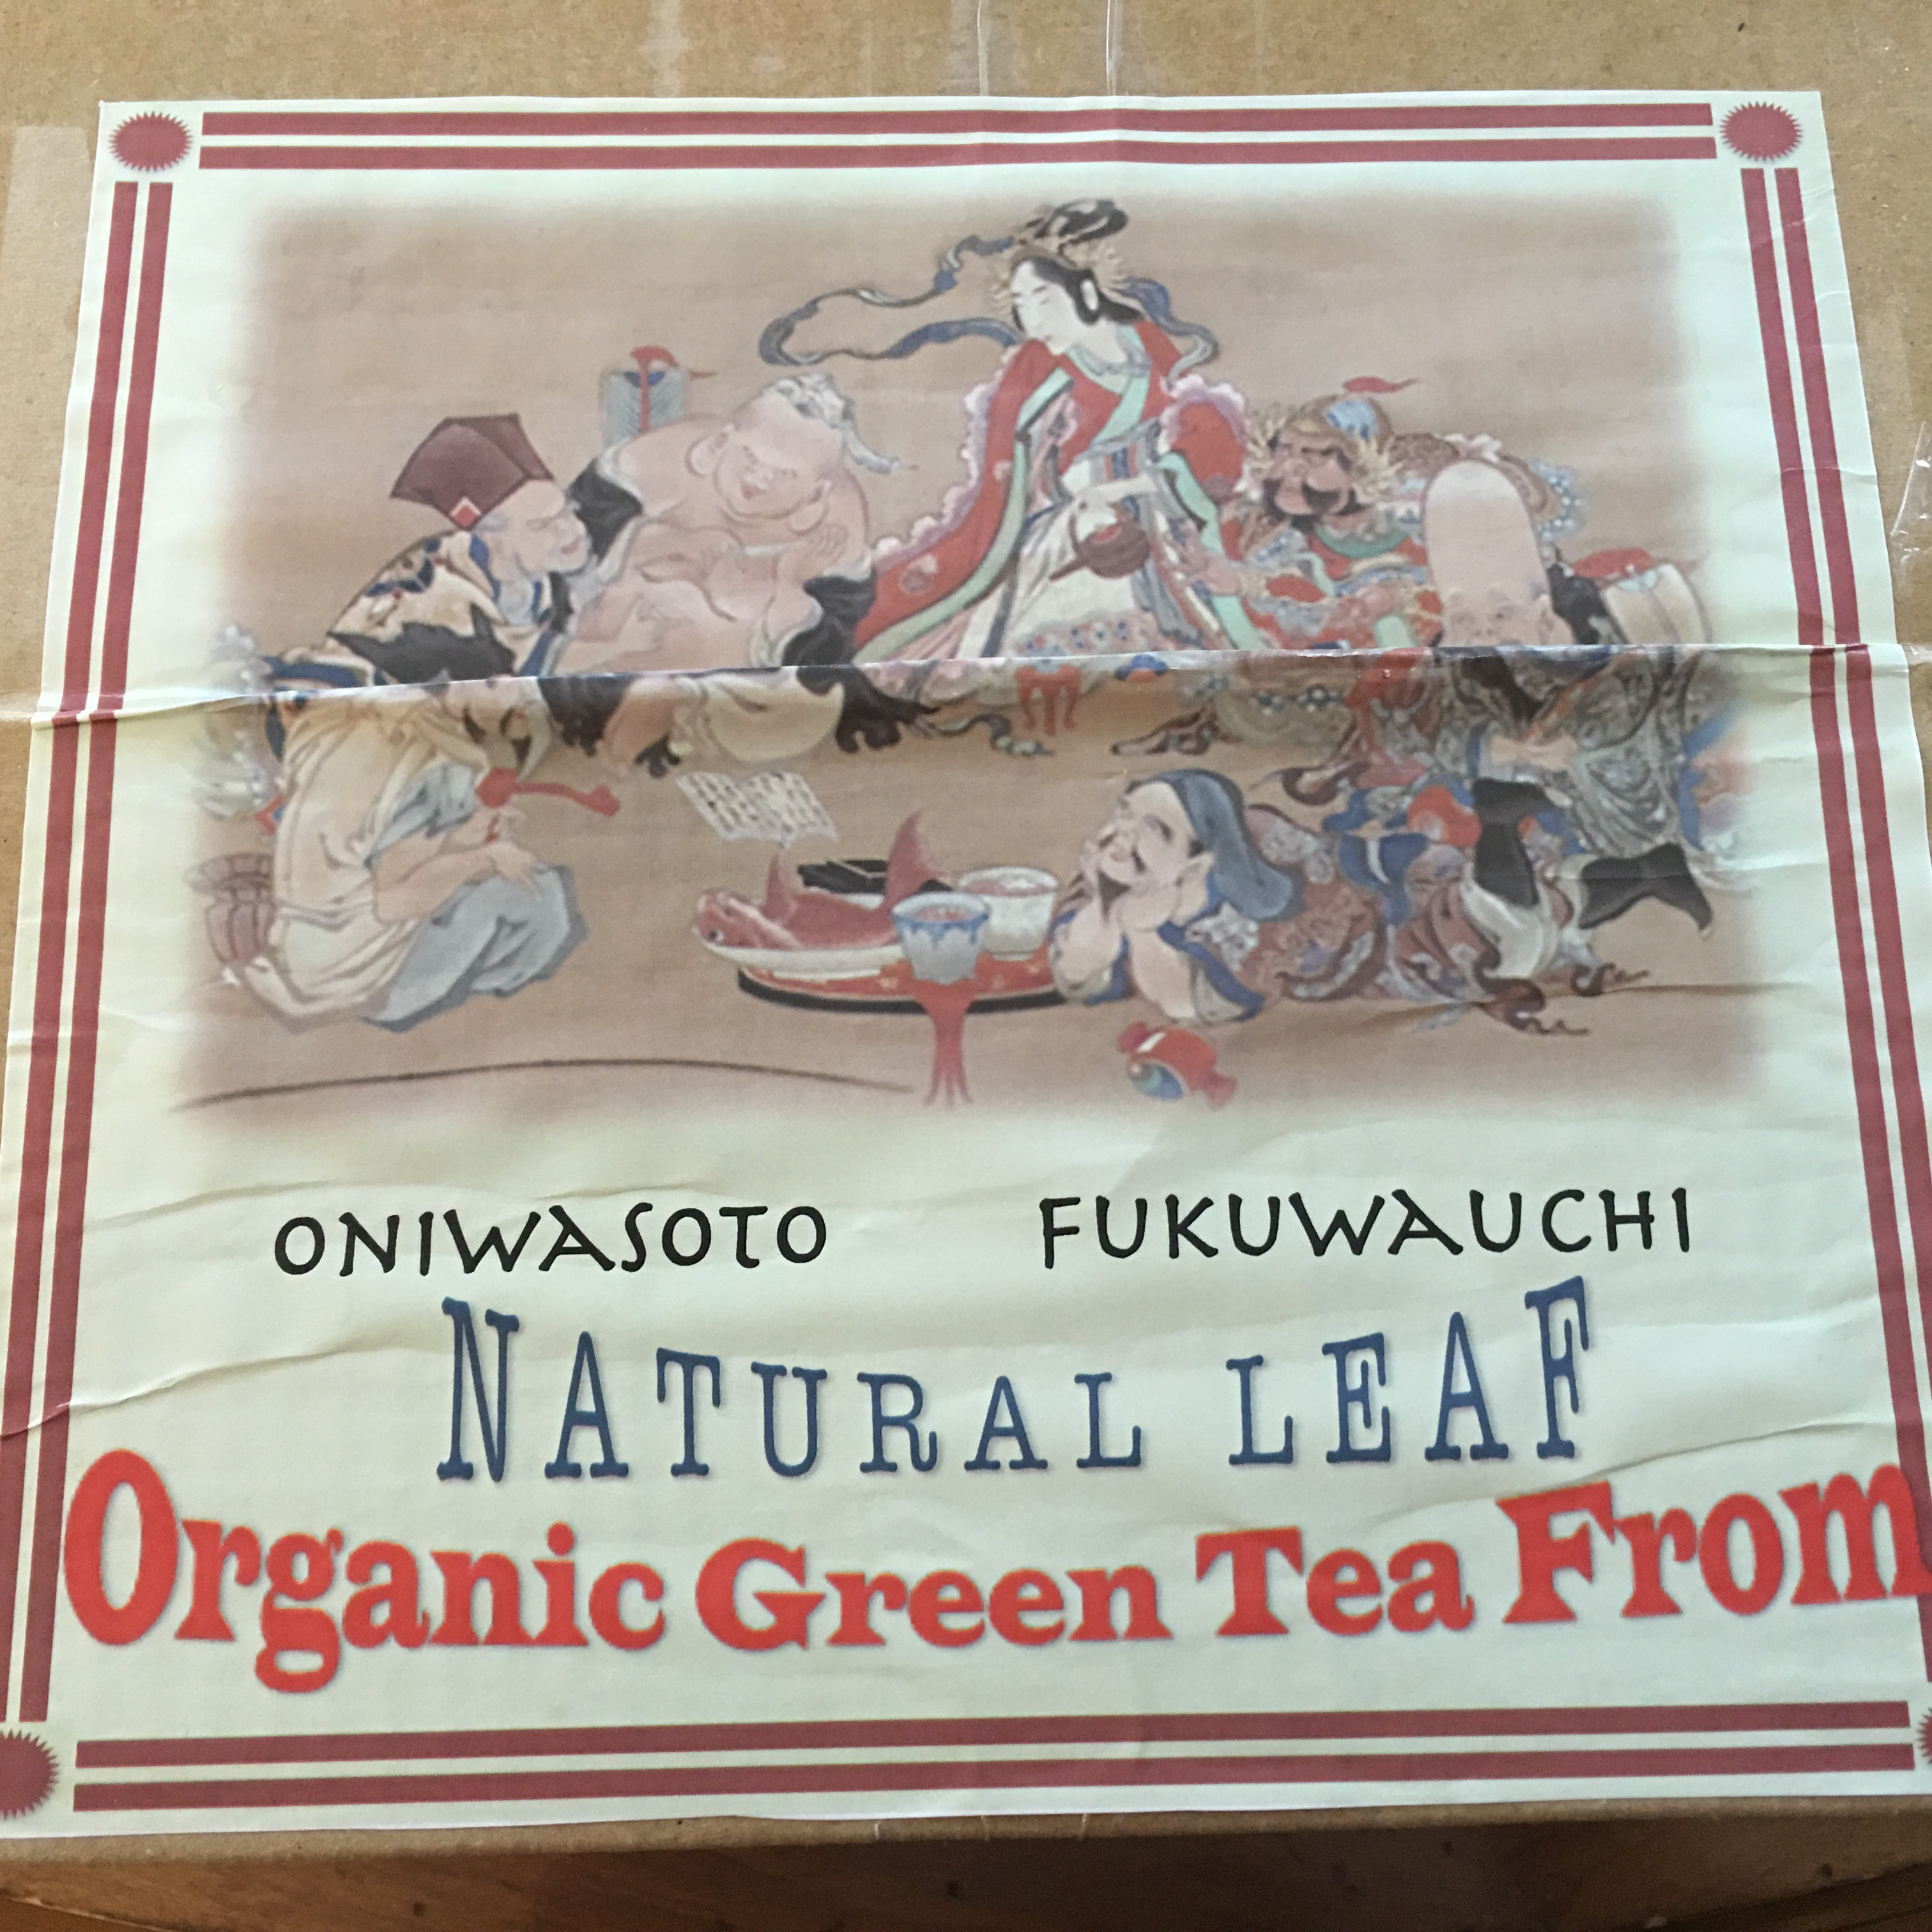 Product Review: Green Tea Monthly Shipment Service From www.Organic-greentea-from.com